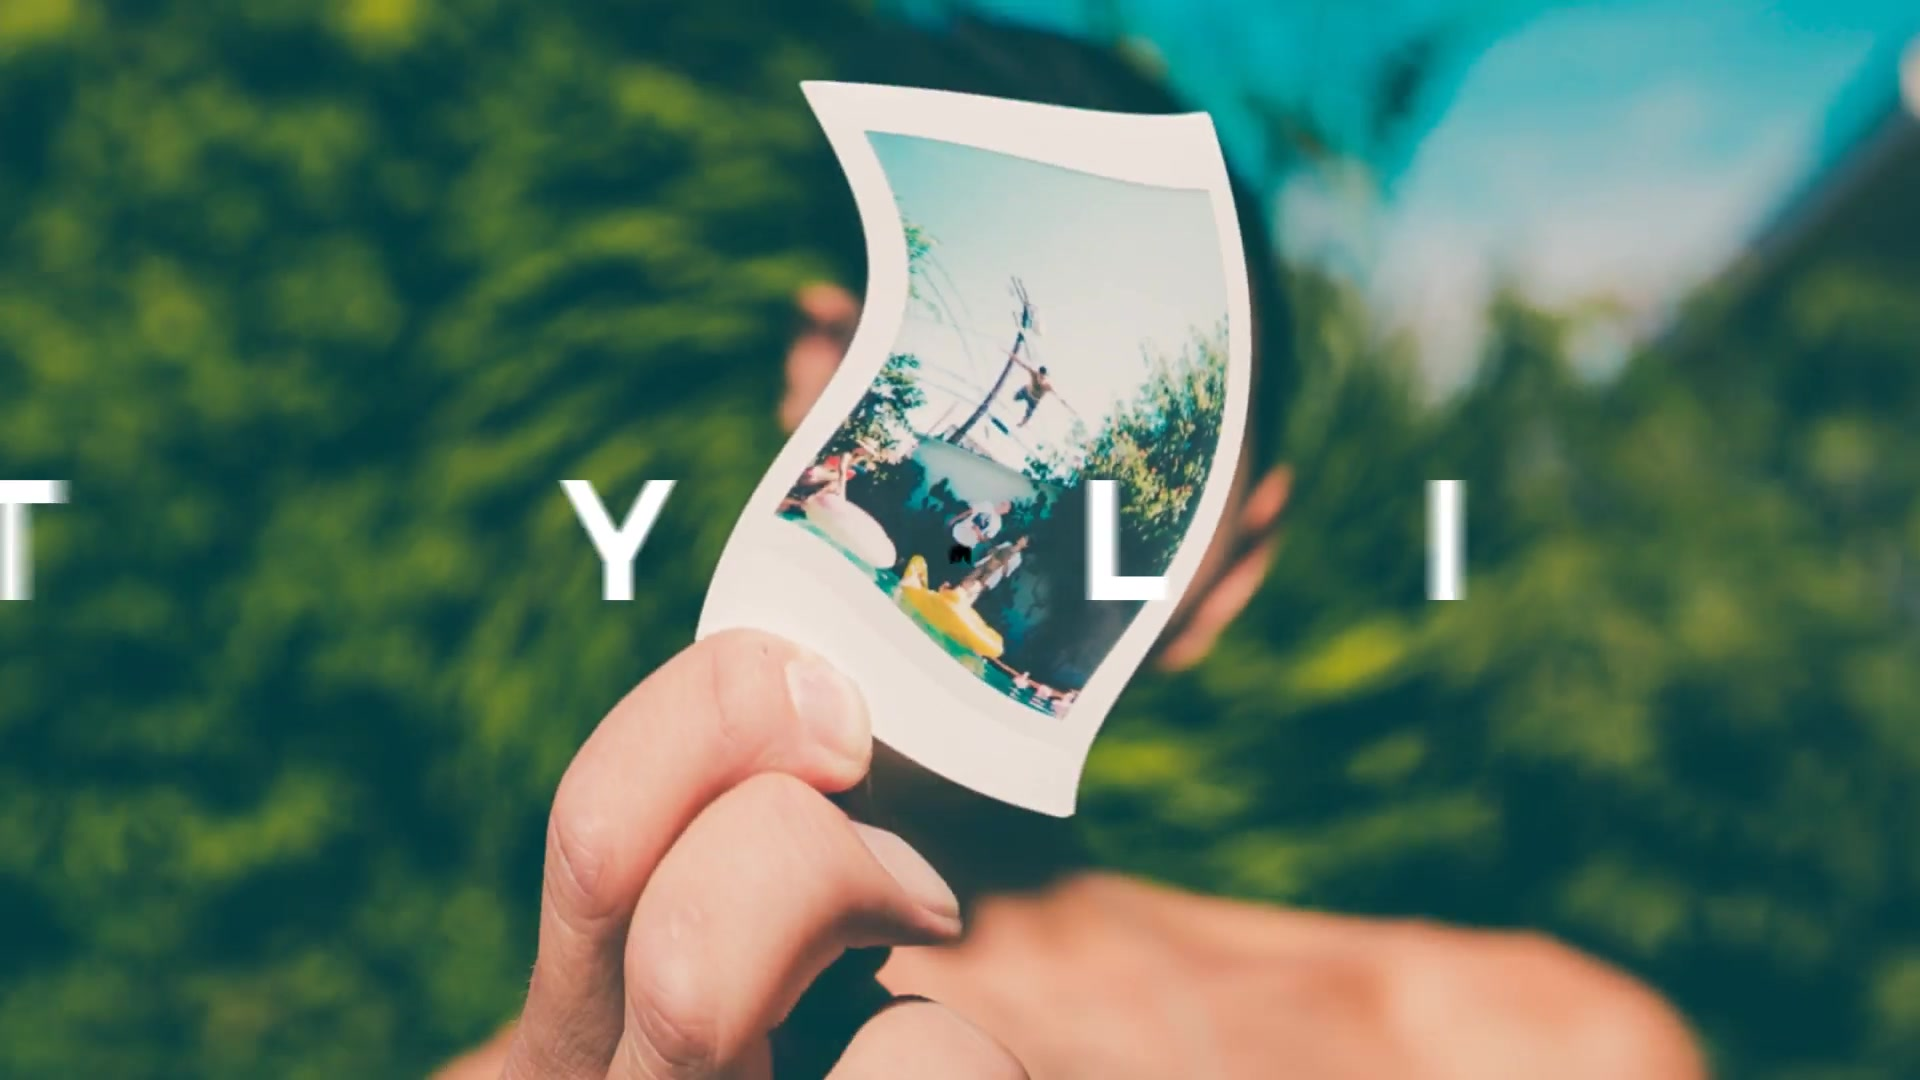 Typo Rhythm Opener - Download Videohive 20506298